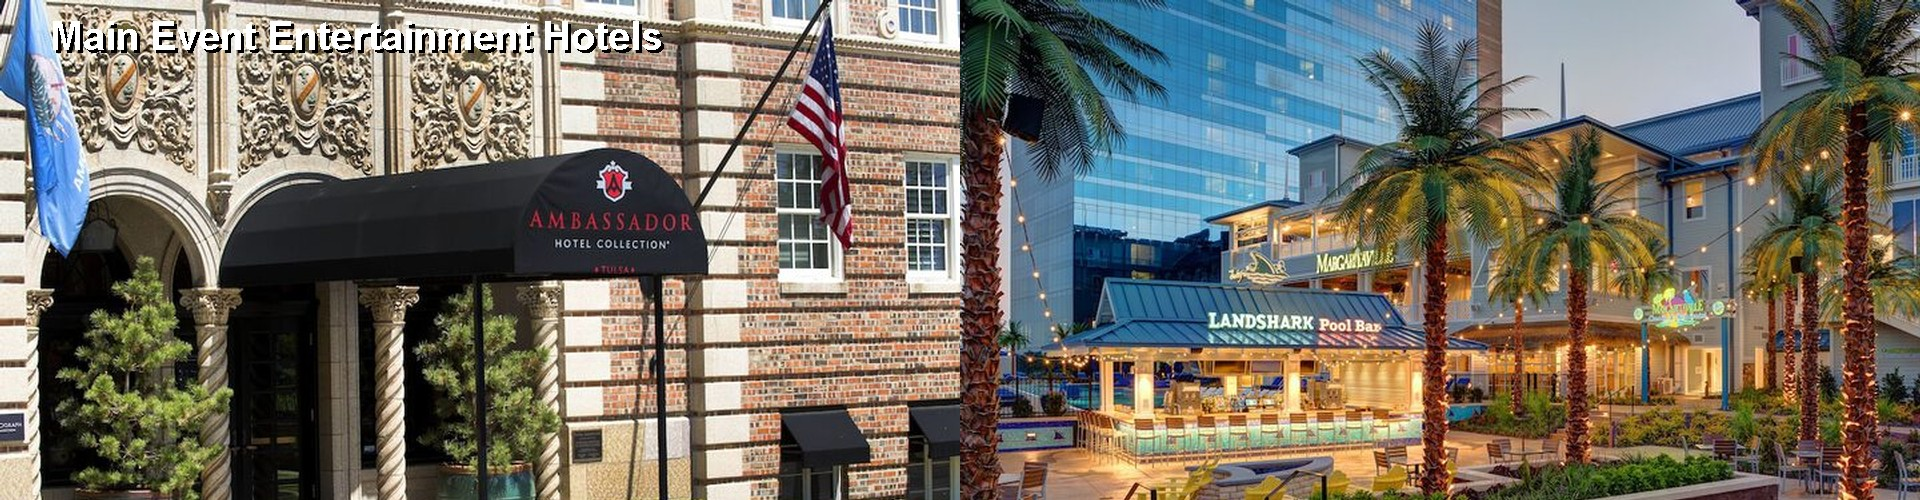 5 Best Hotels near Main Event Entertainment